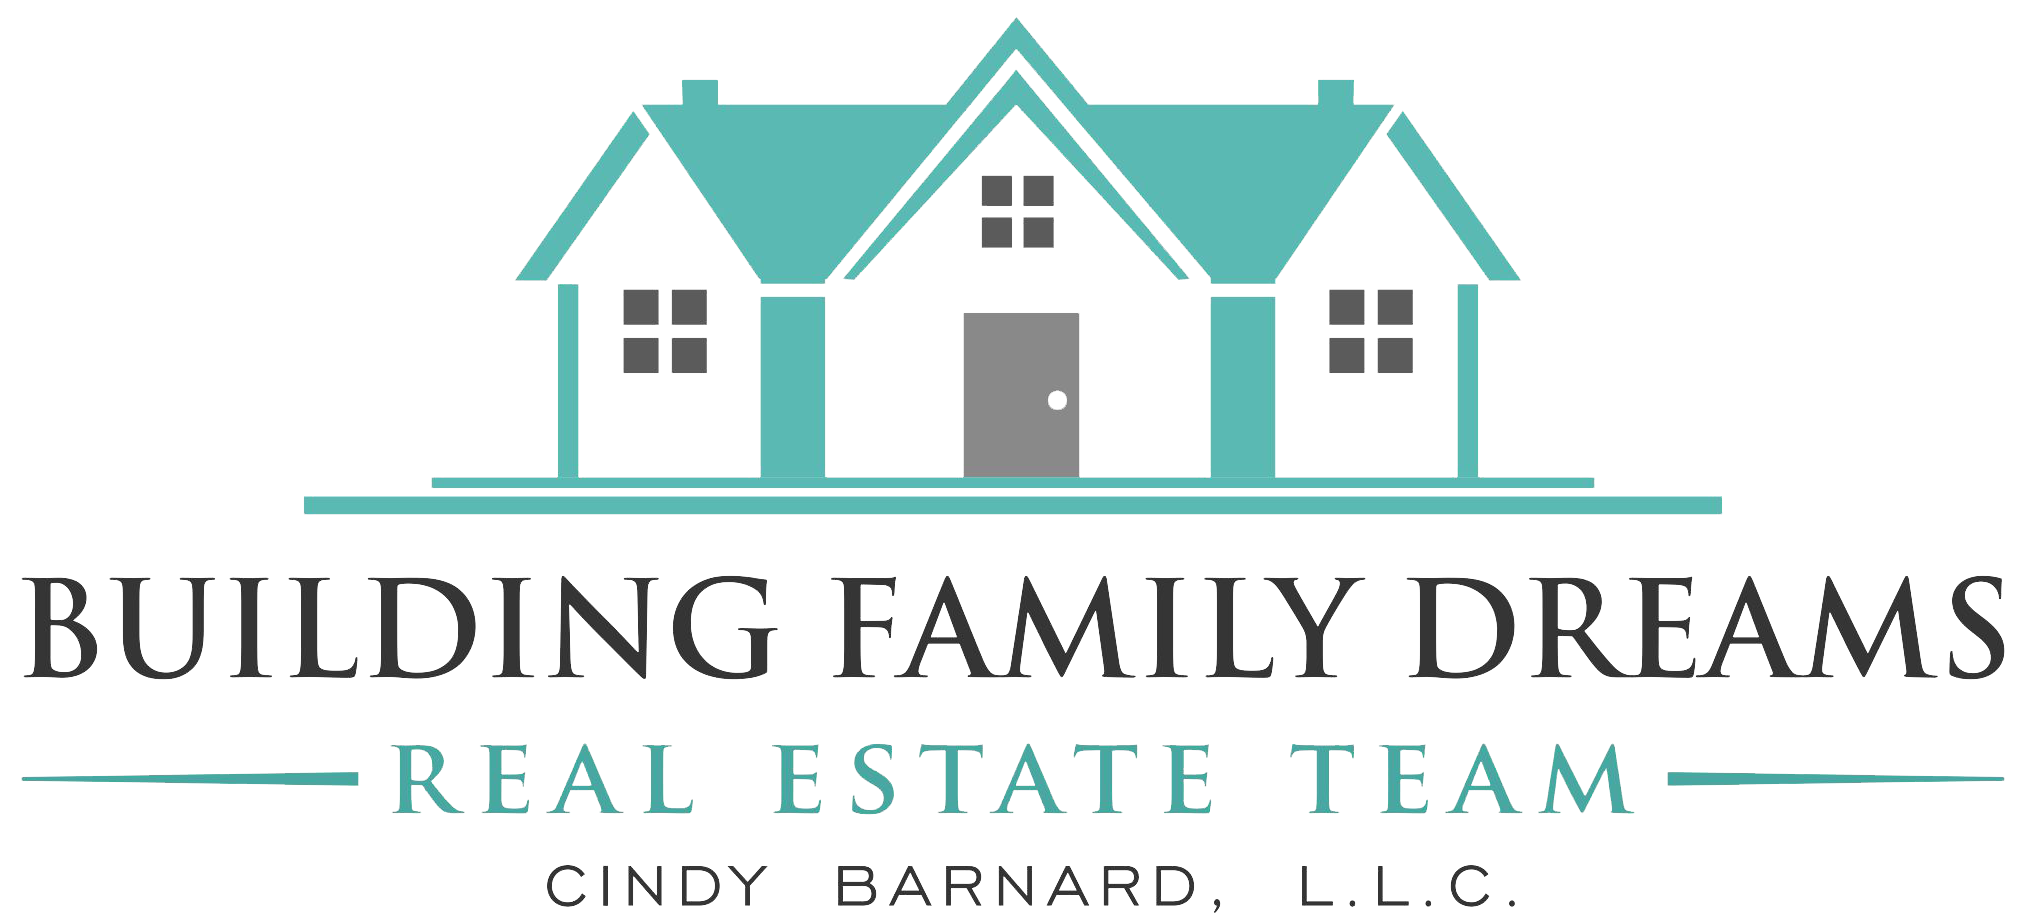 Building Family Dreams Real Estate Team Cindy Barnard, LLC.